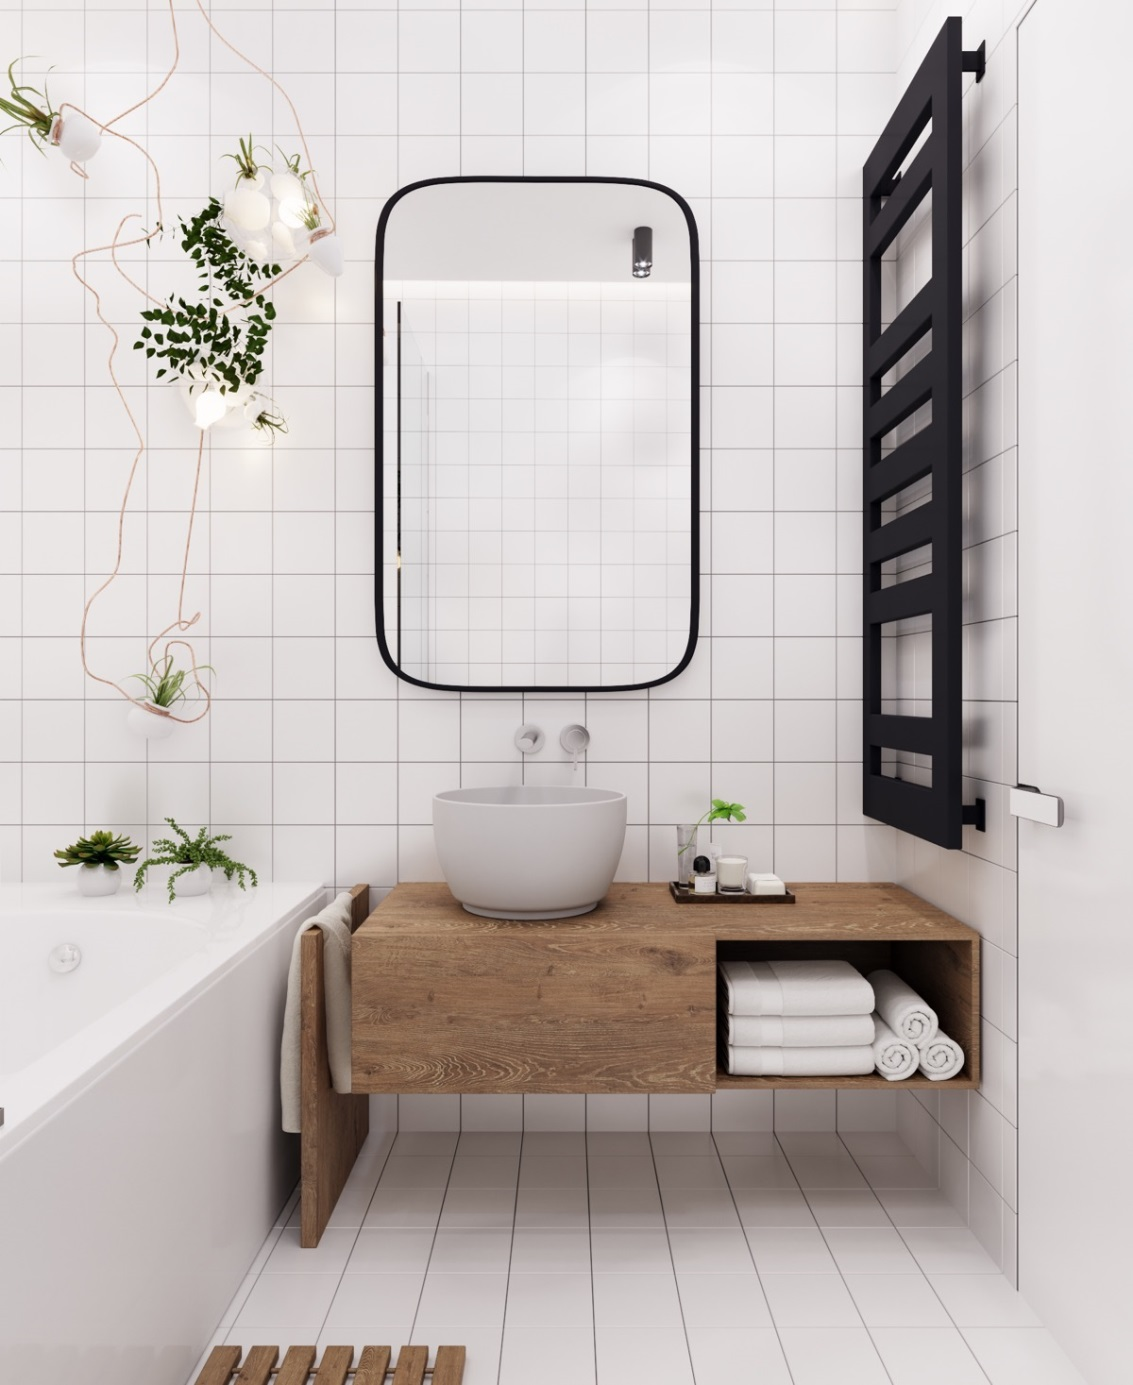 Give Your Bathroom A Fresh Look